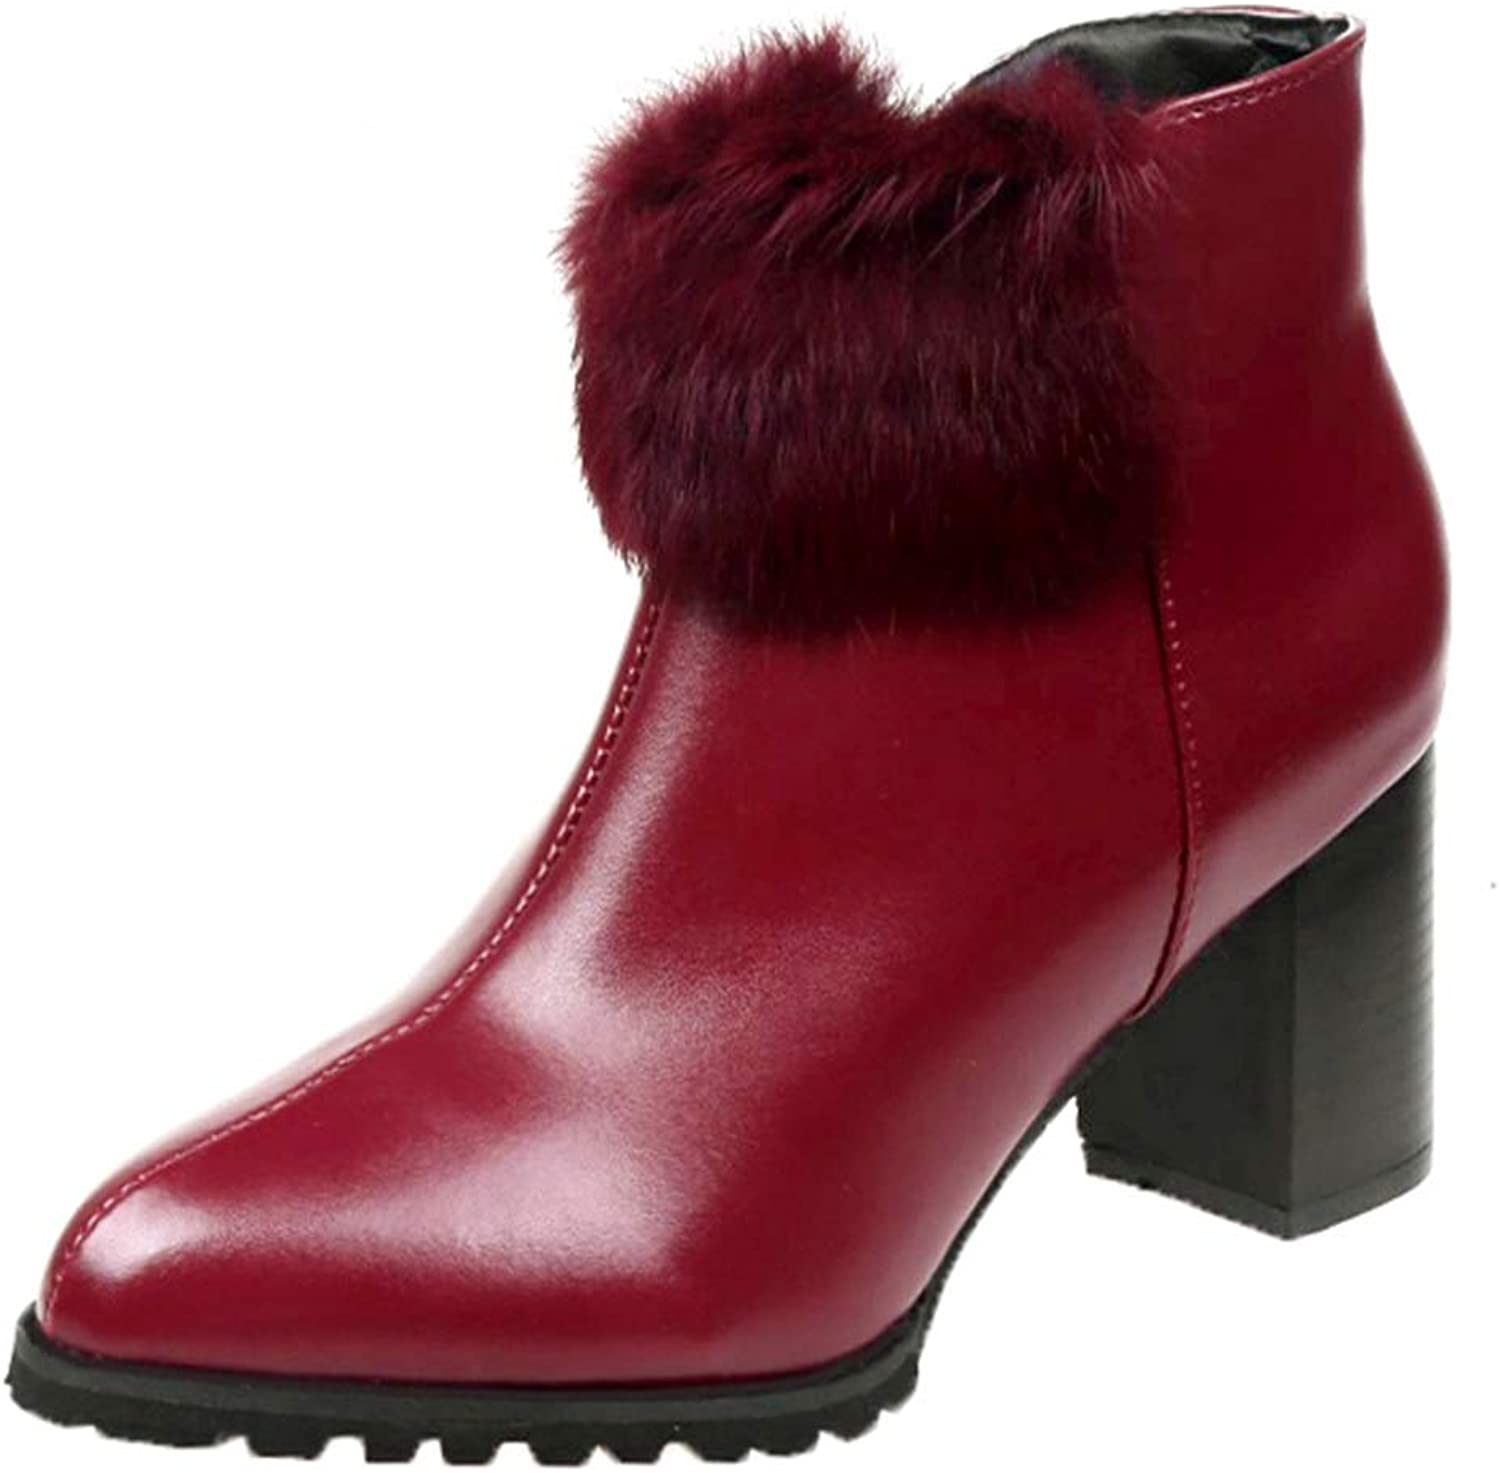 Women Leather Ankle Boots Pointed Toe Chunky High Heels with Zip Side Fluffy Ball Decor, Red Party shoes